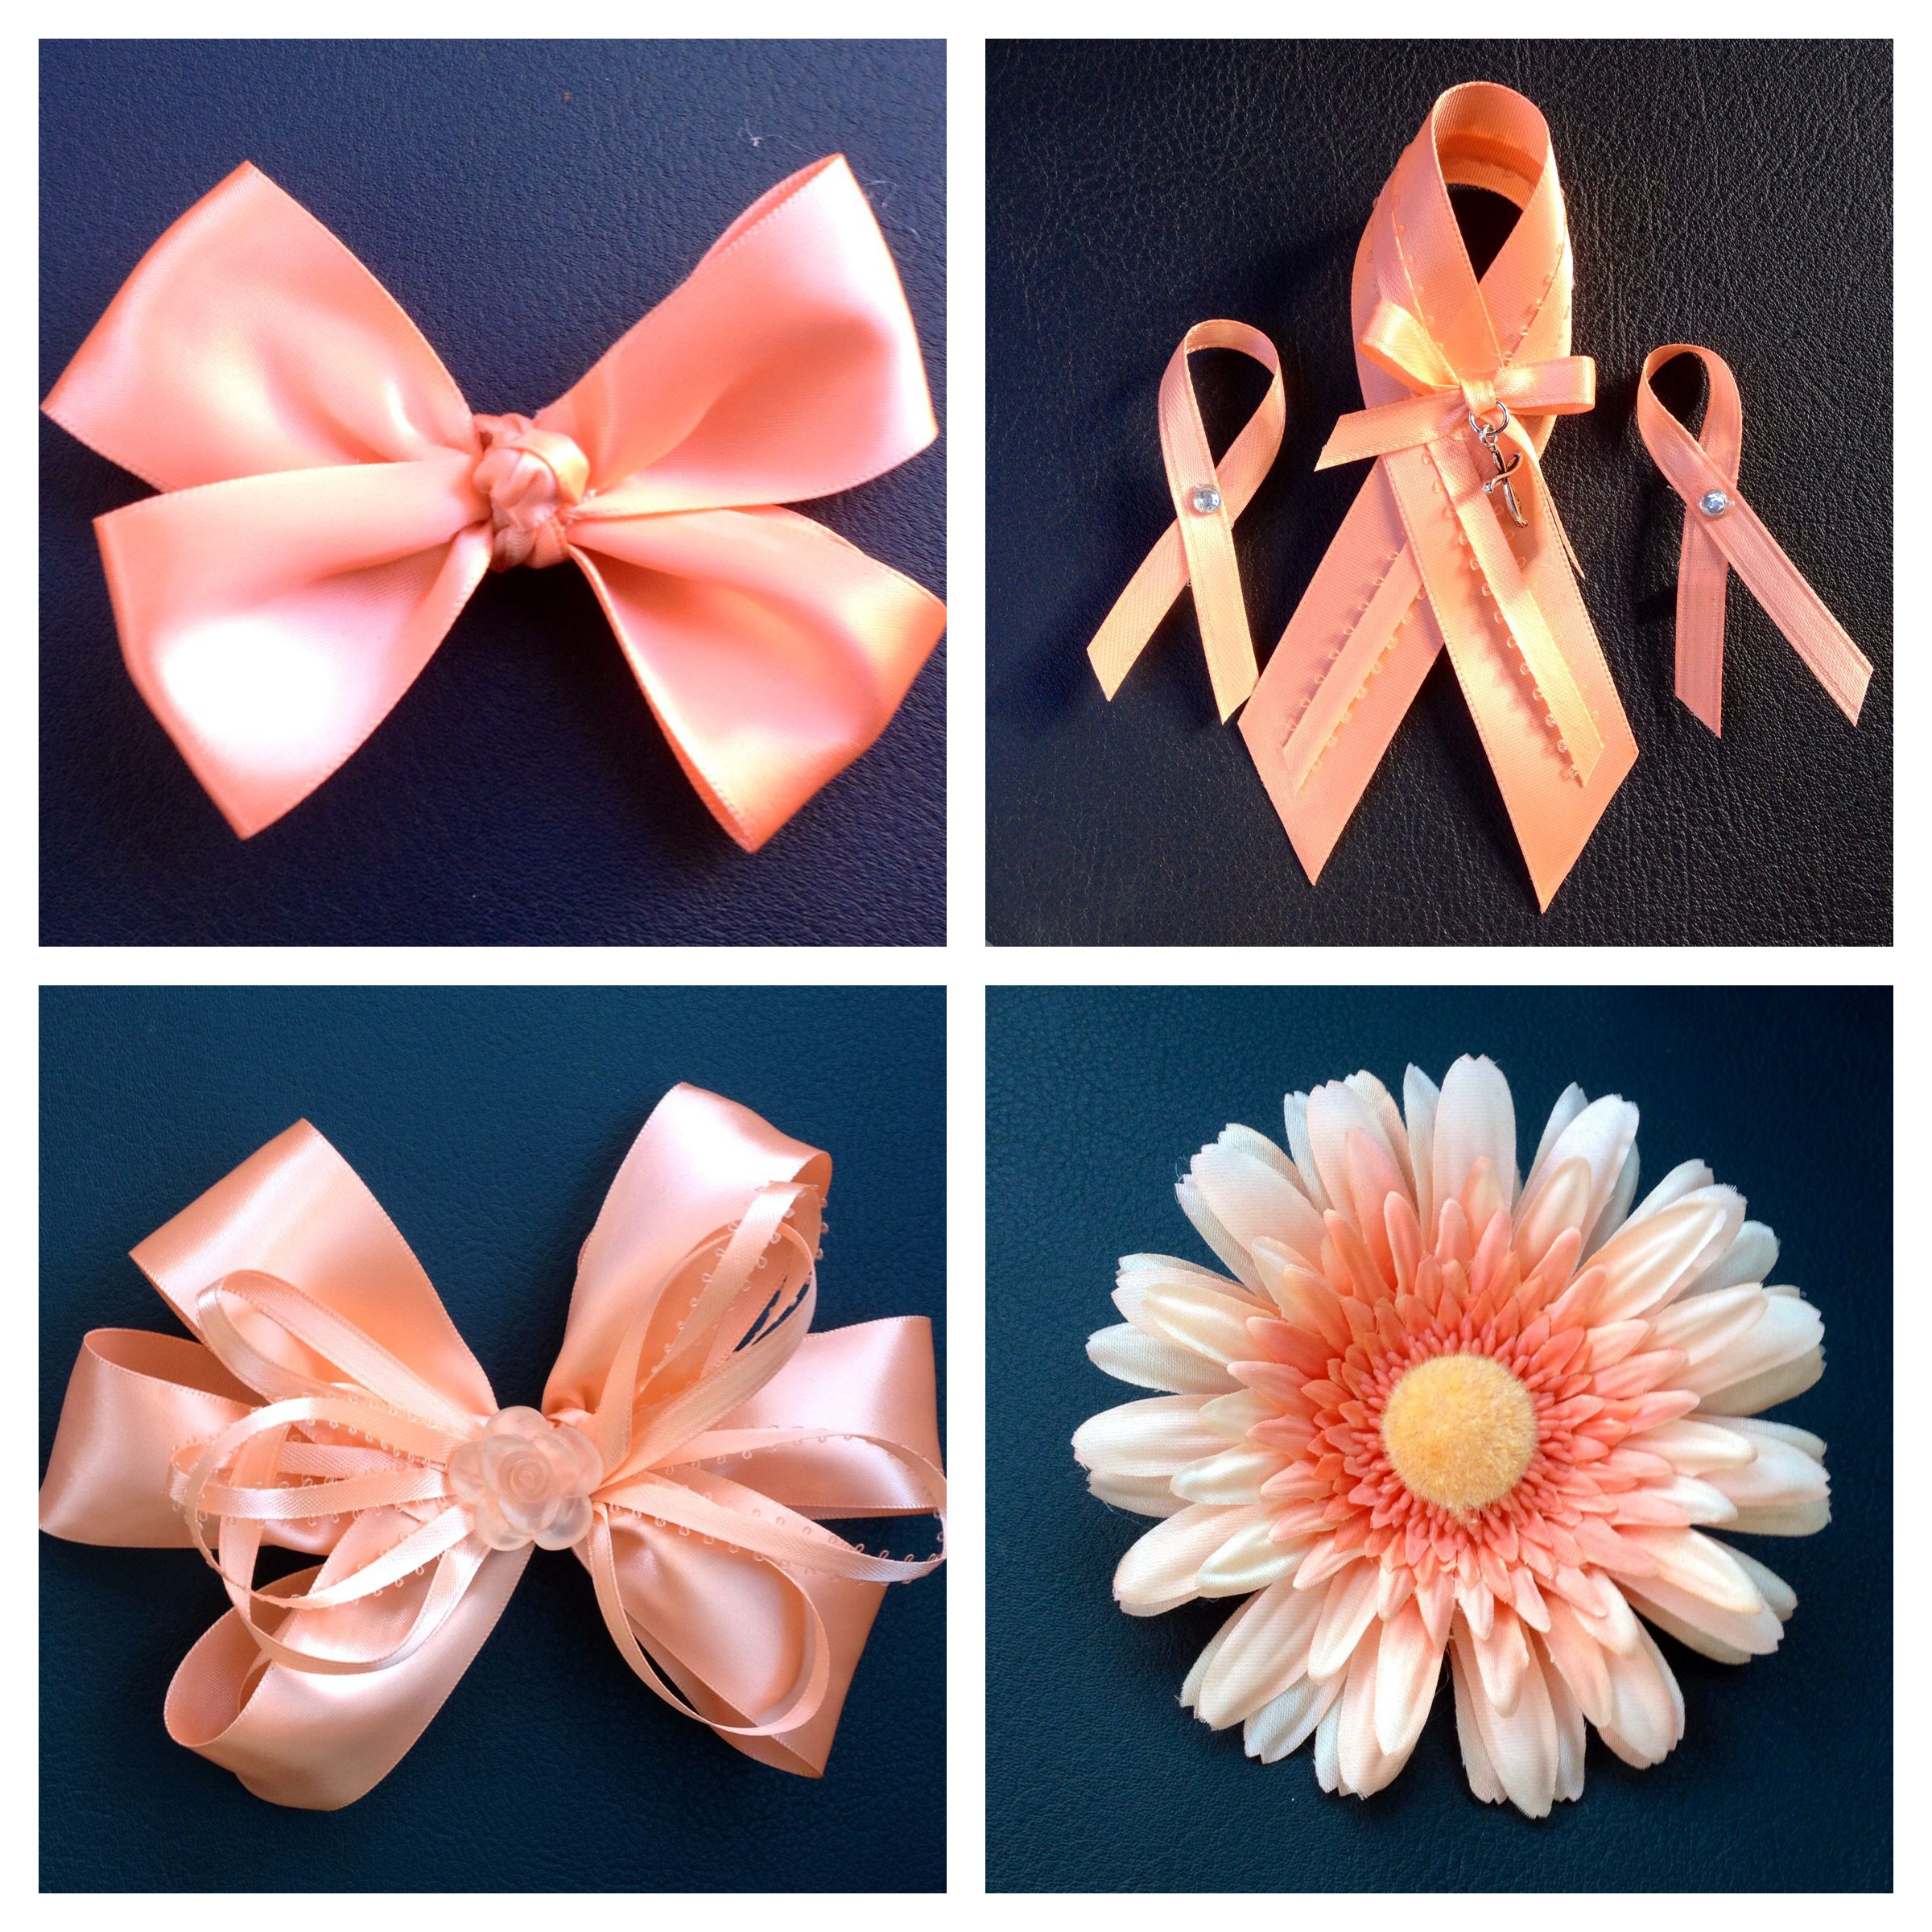 I made these hair bows and ribbons in support of my hero my i made these hair bows and ribbons in support of my hero she was diagnosed with uterine cancer peach i the color of ribbon for uterine cancer buycottarizona